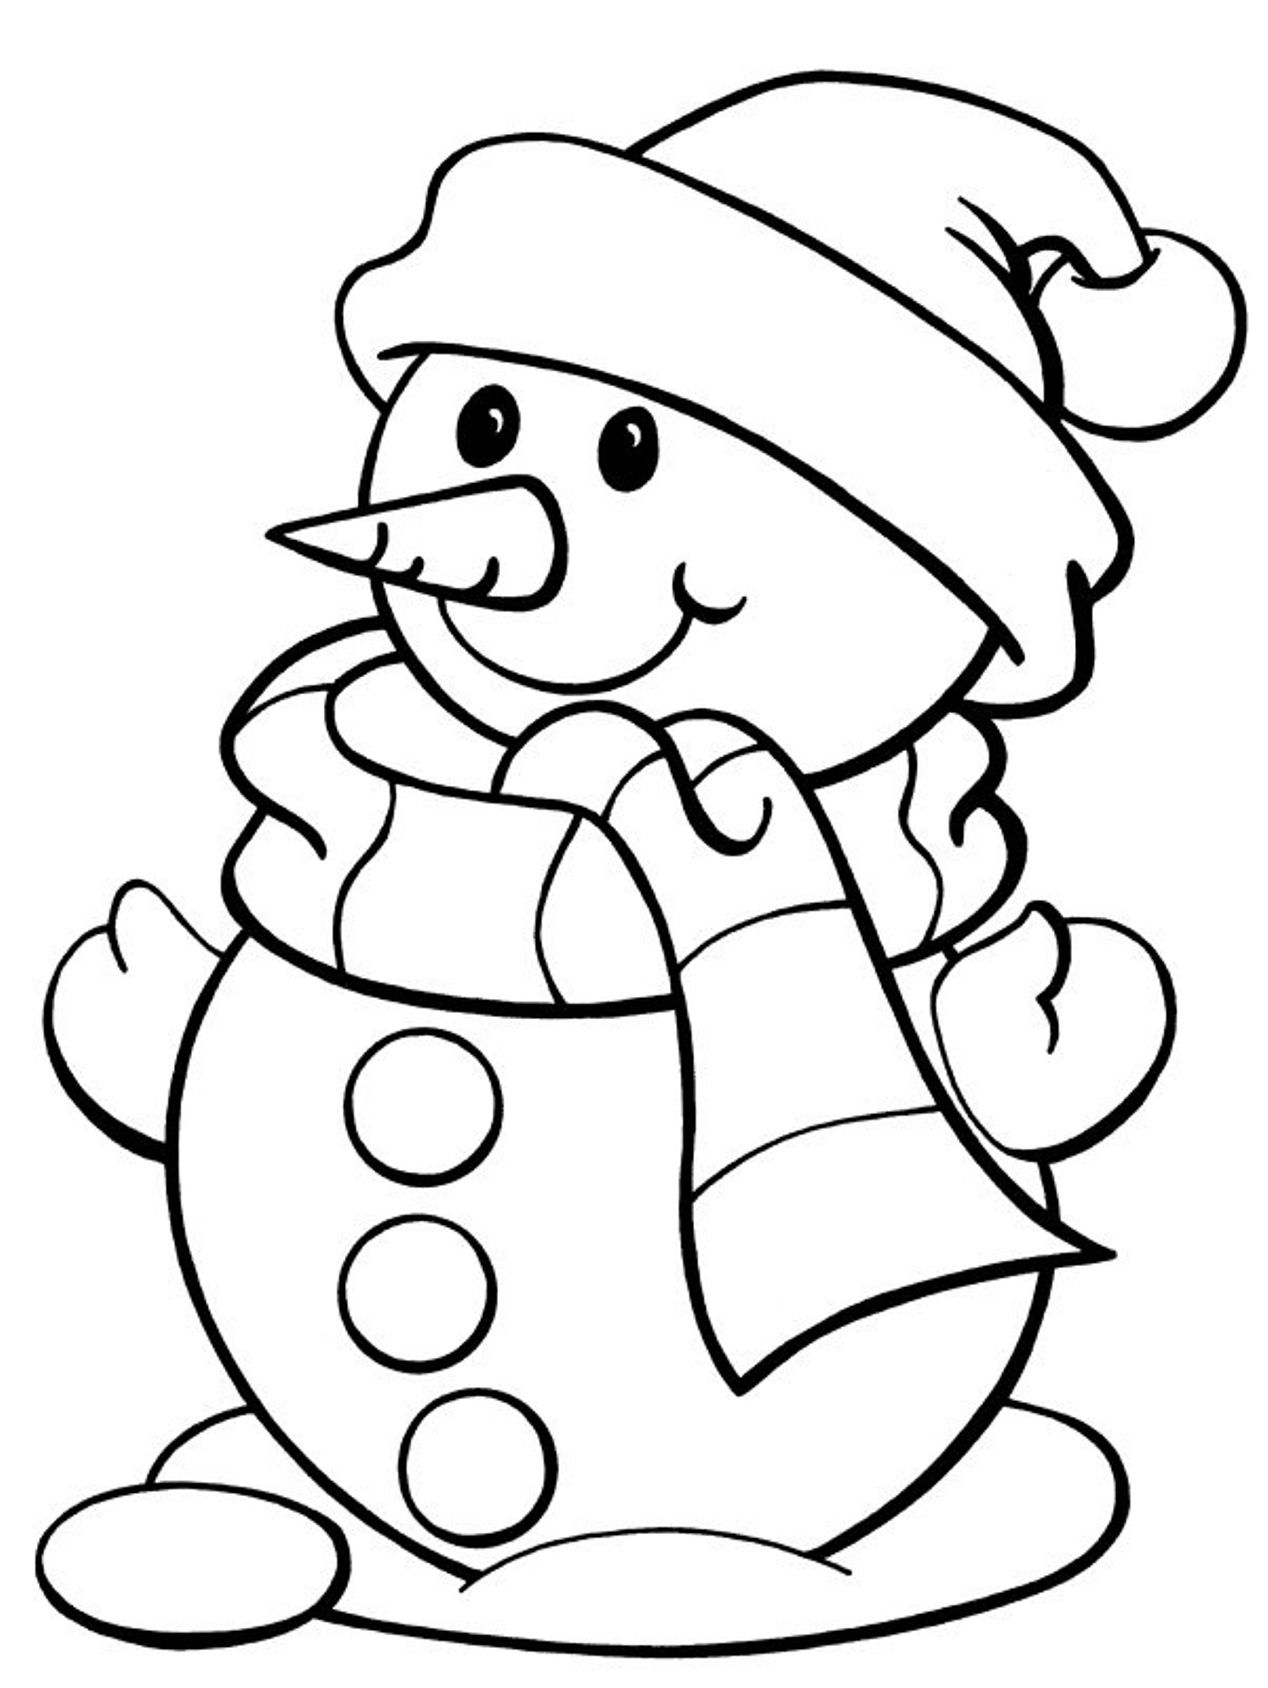 winter coloring pages free printable # 4